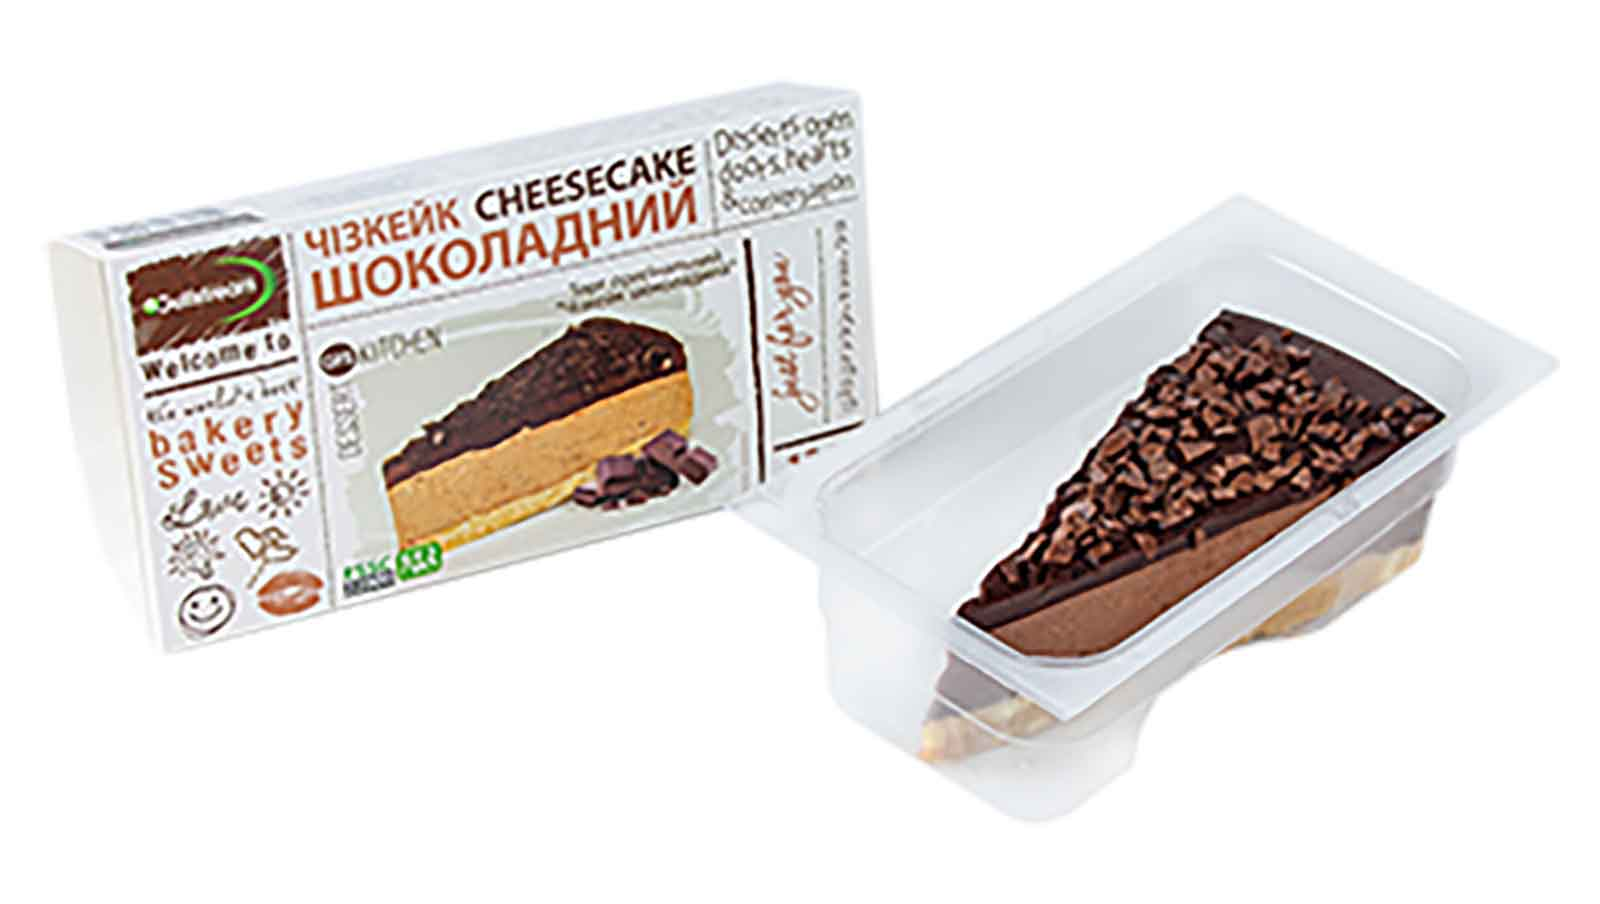 Cheesecake Chocolate 130g